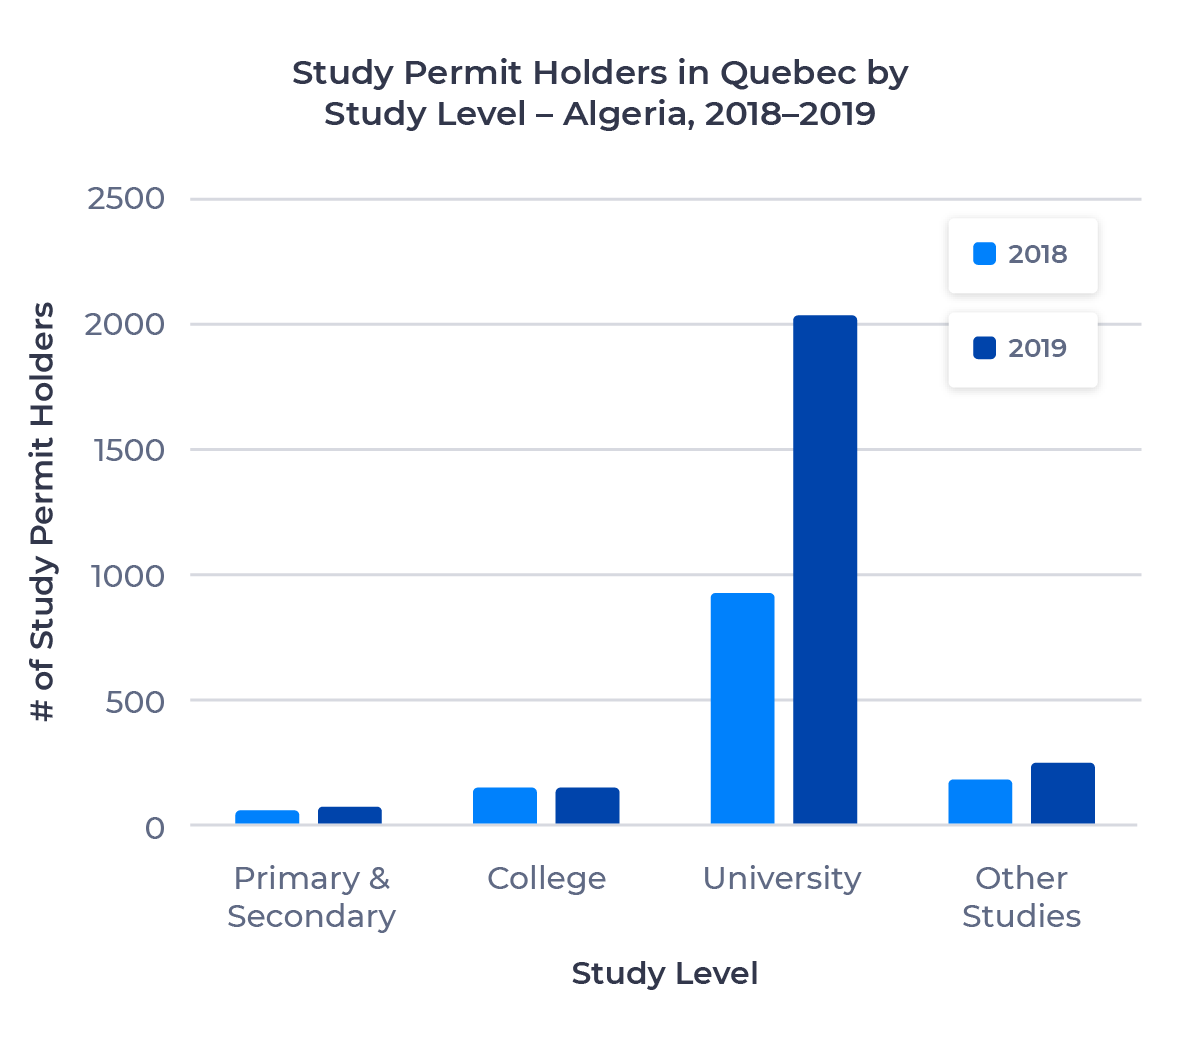 Bar chart showing the number of study permit holders in Quebec from Algeria by study level. Described in detail below.